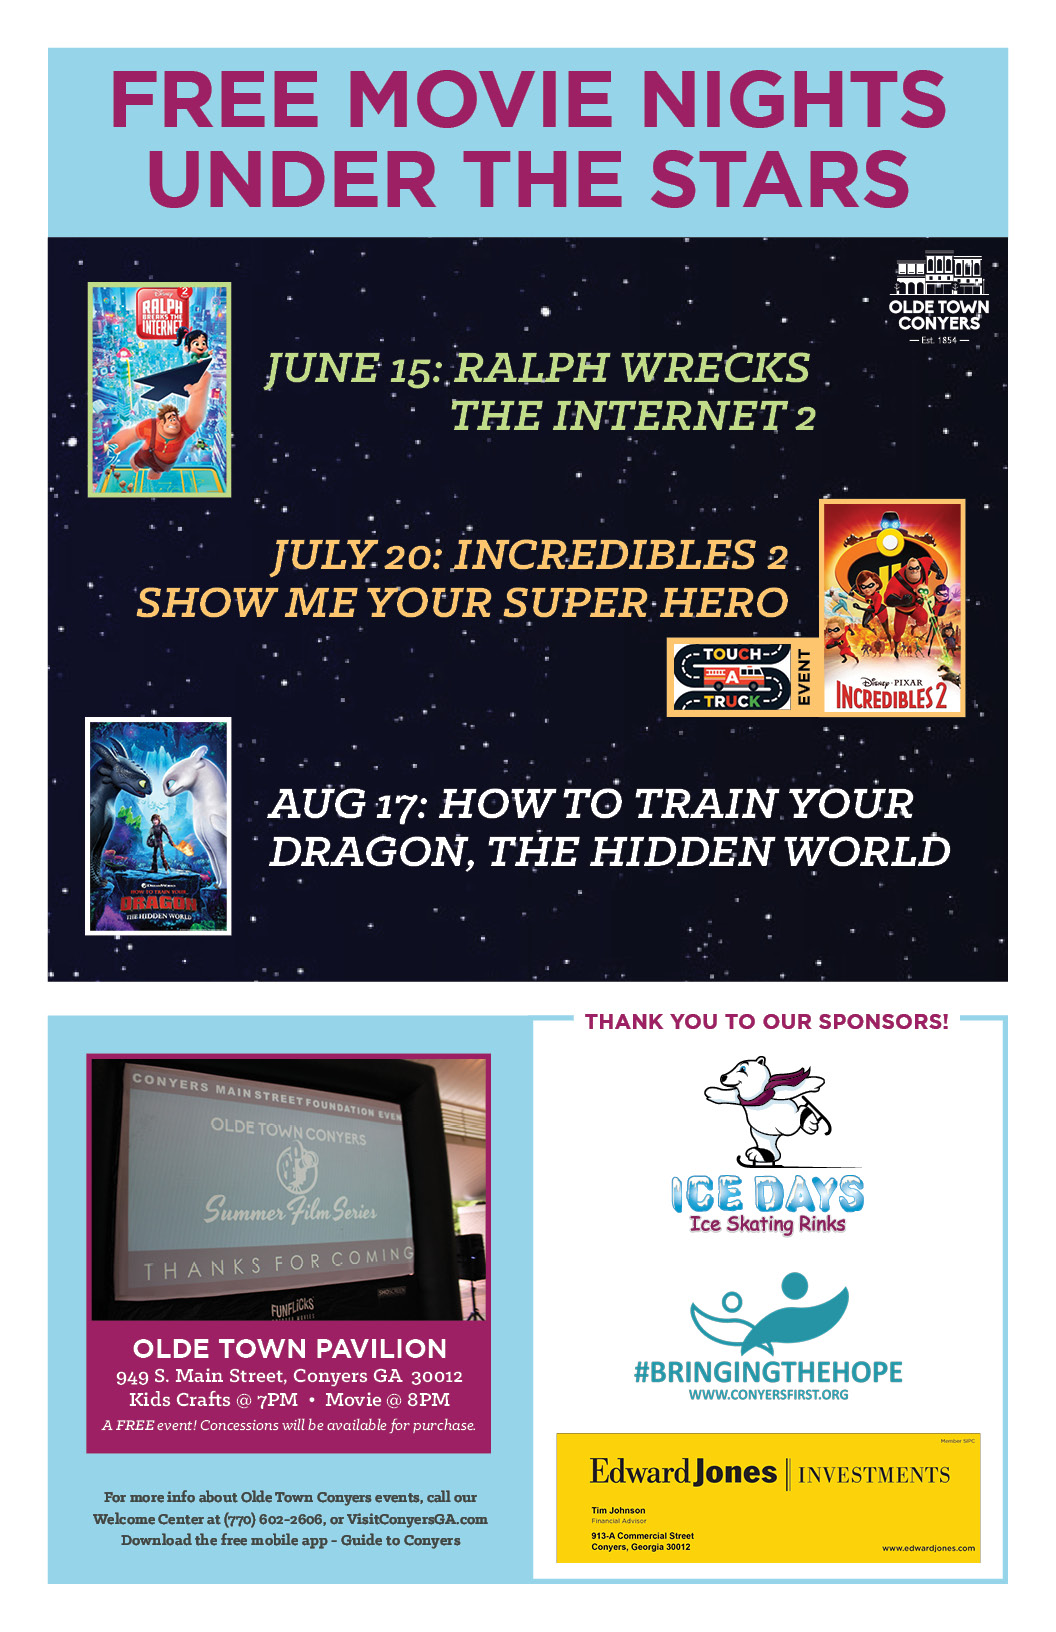 Free Family Fun: Olde Town Summer Film Series